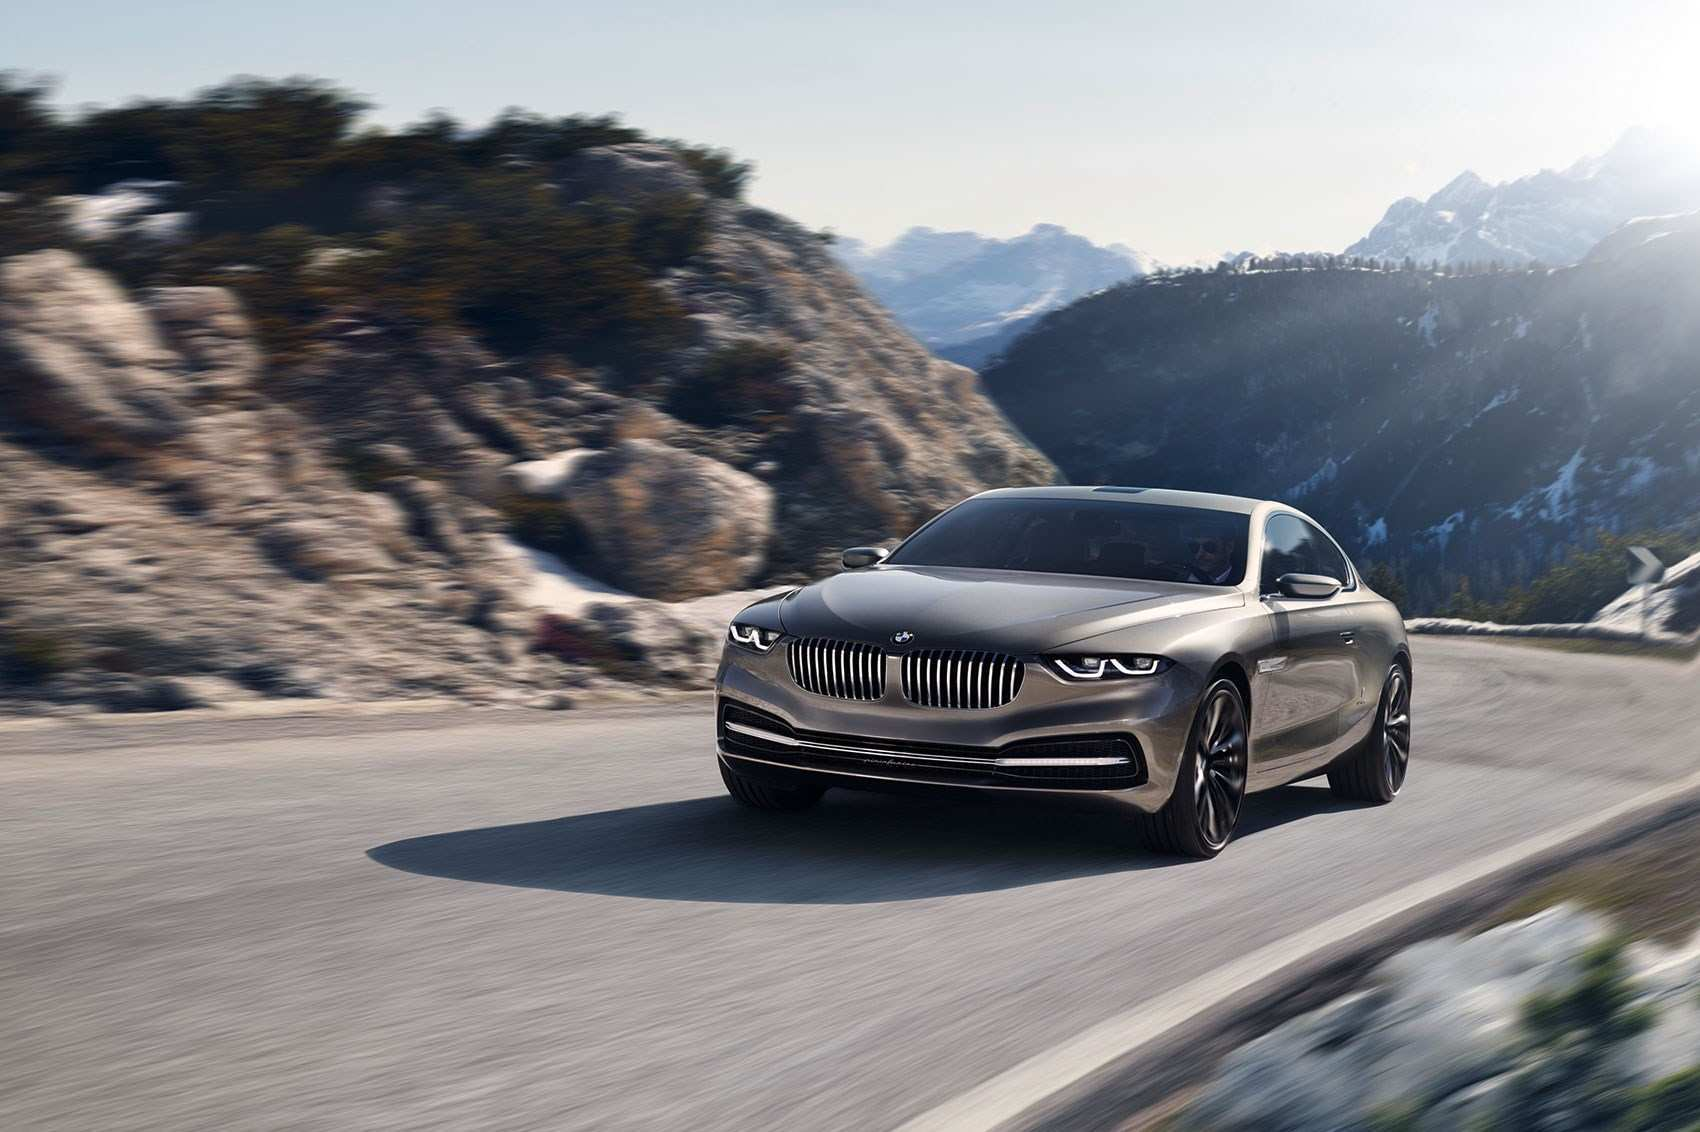 86 New 2020 Bmw 9 Serisi Specs with 2020 Bmw 9 Serisi